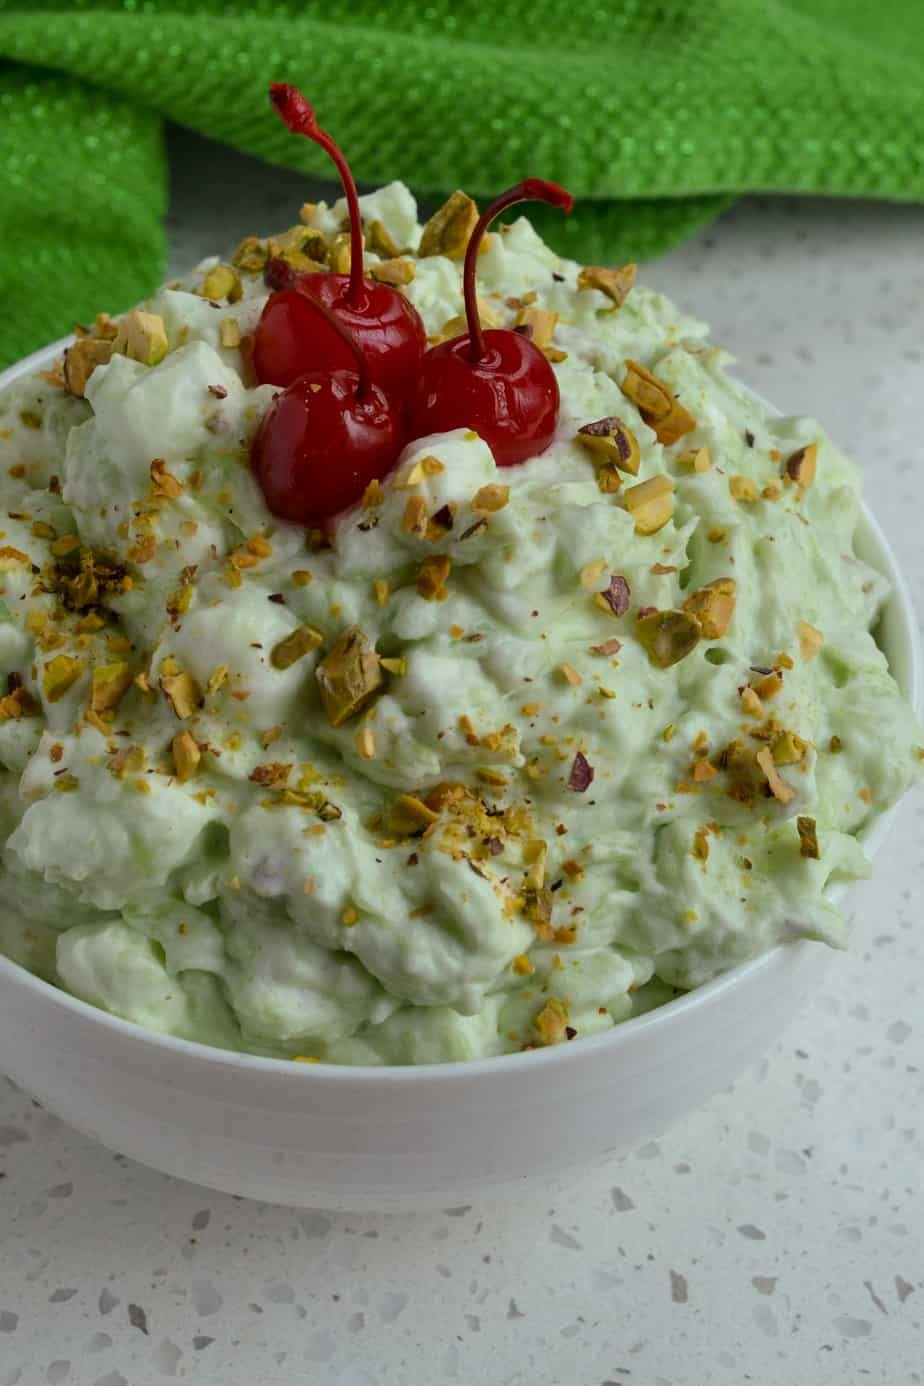 Watergate Salad garnished with pistachio nuts and cherries.